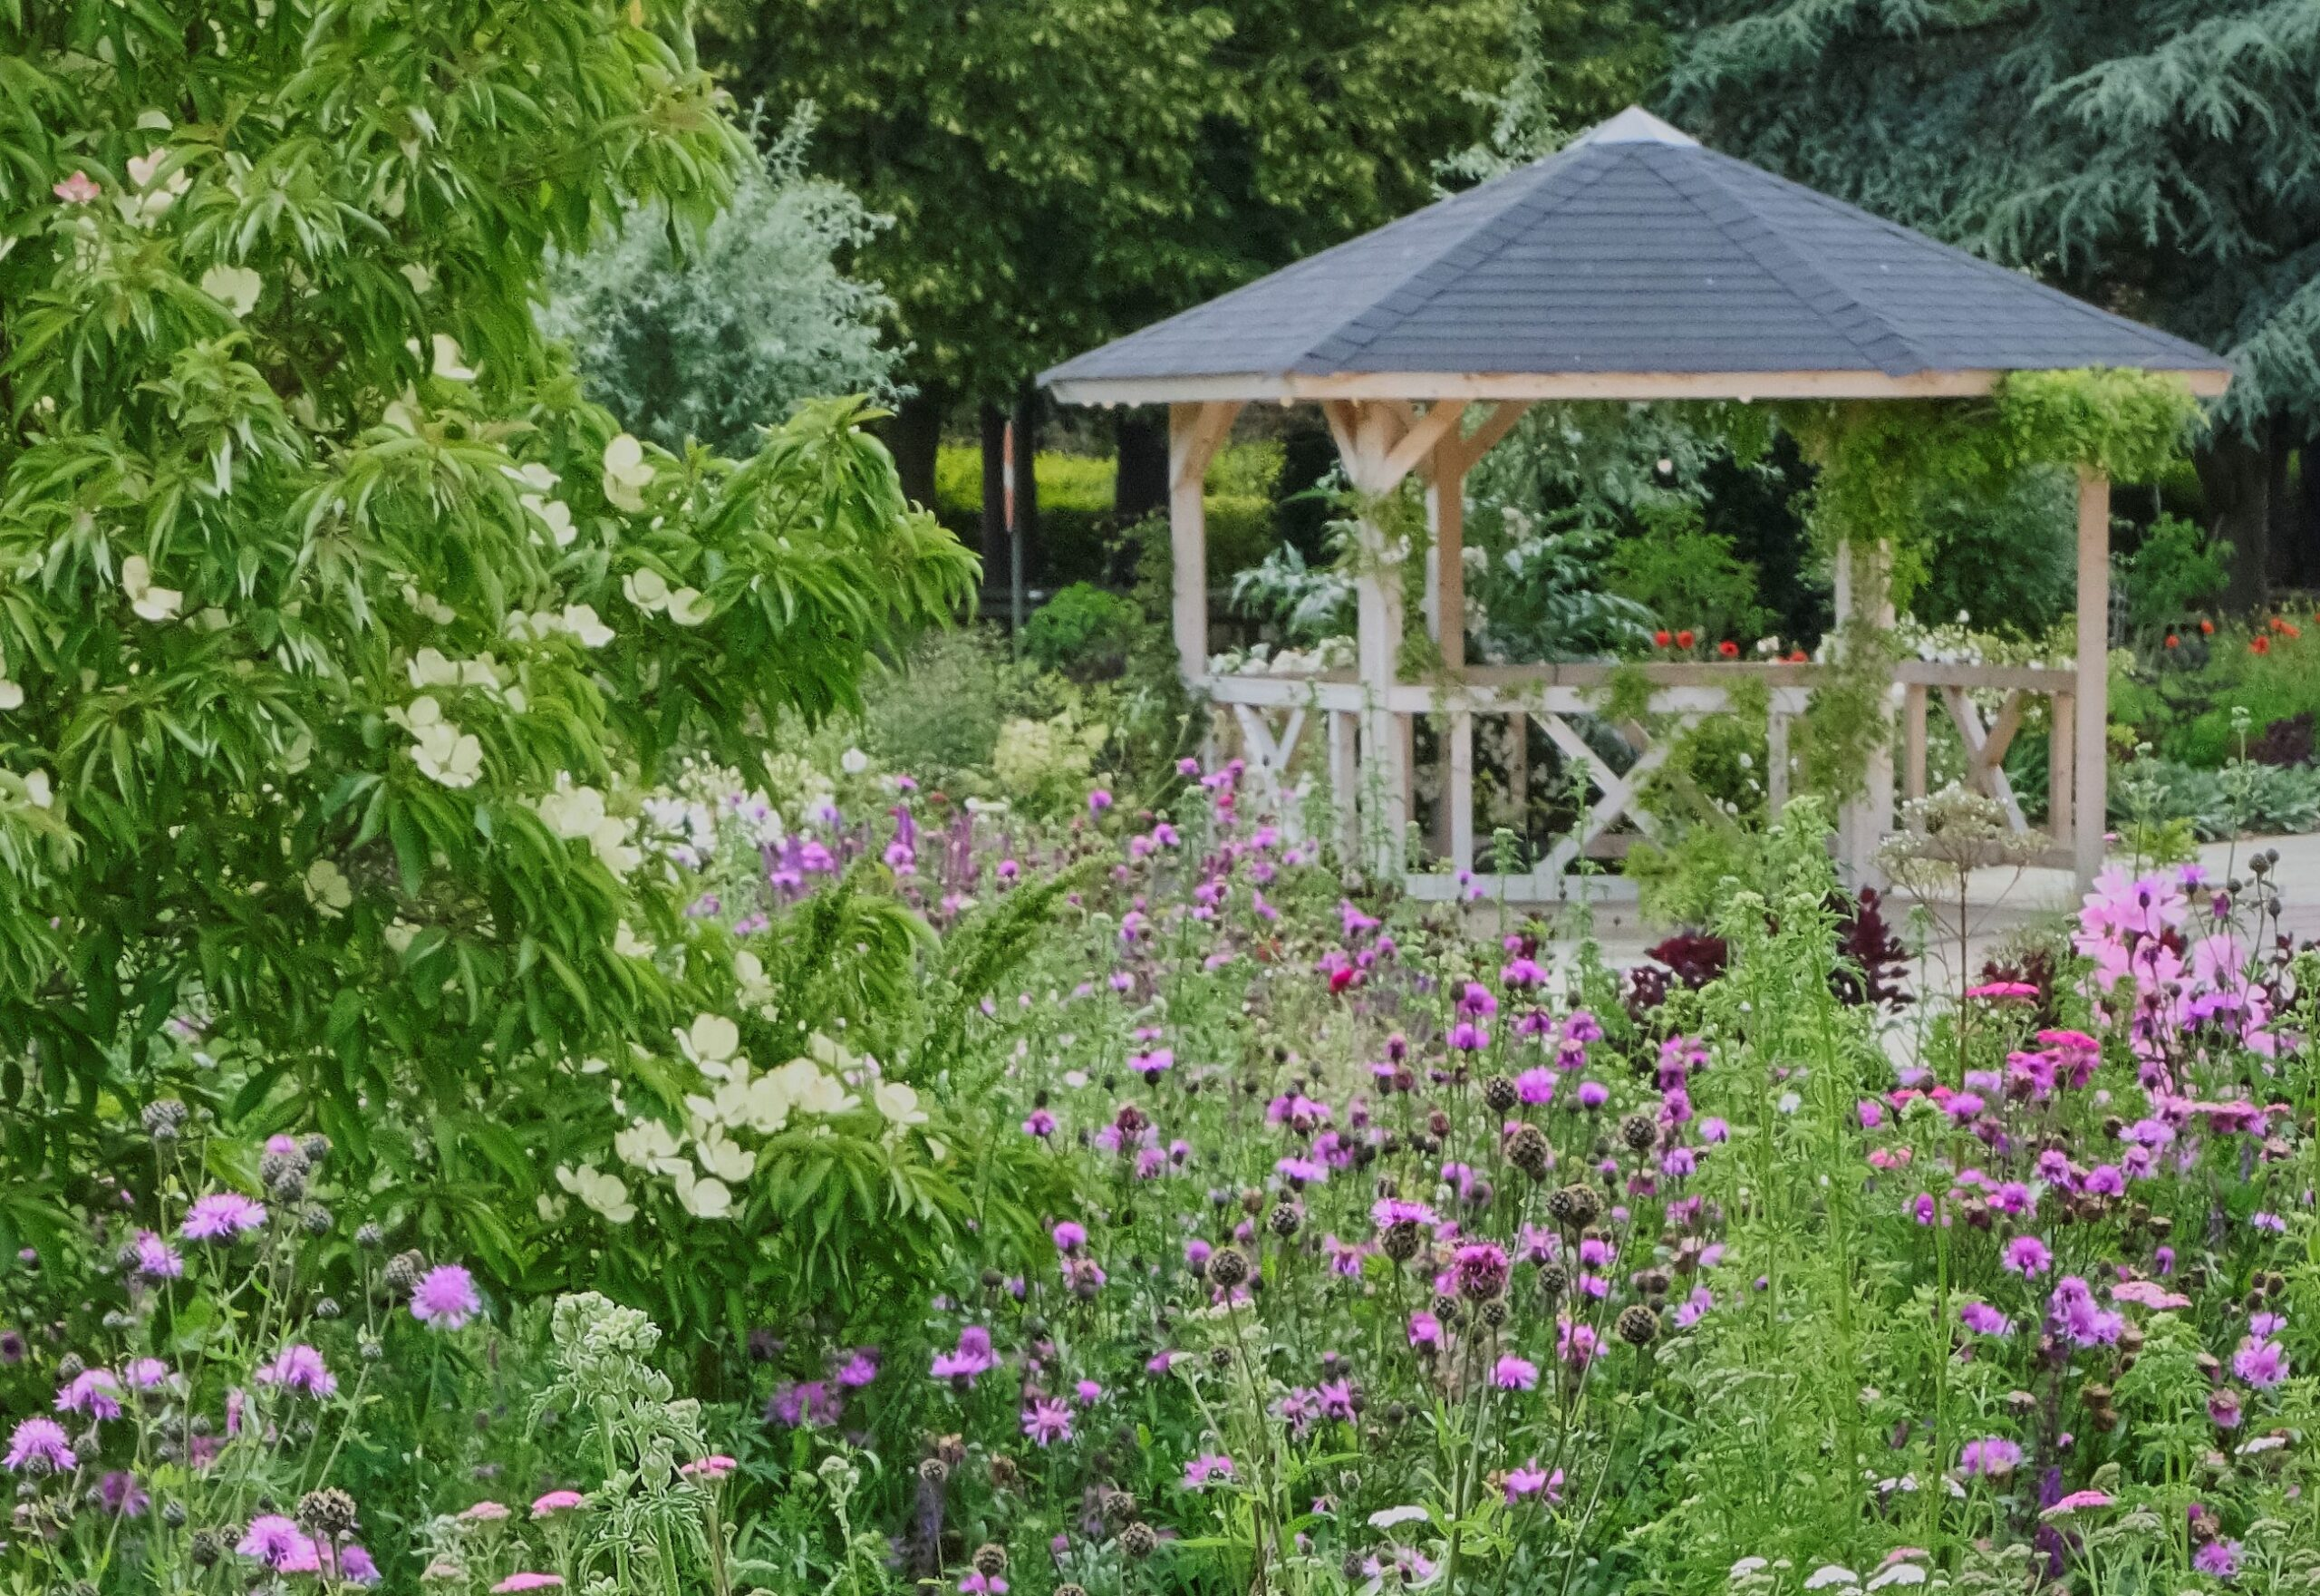 Garden gazebo with purple themed romantic planting